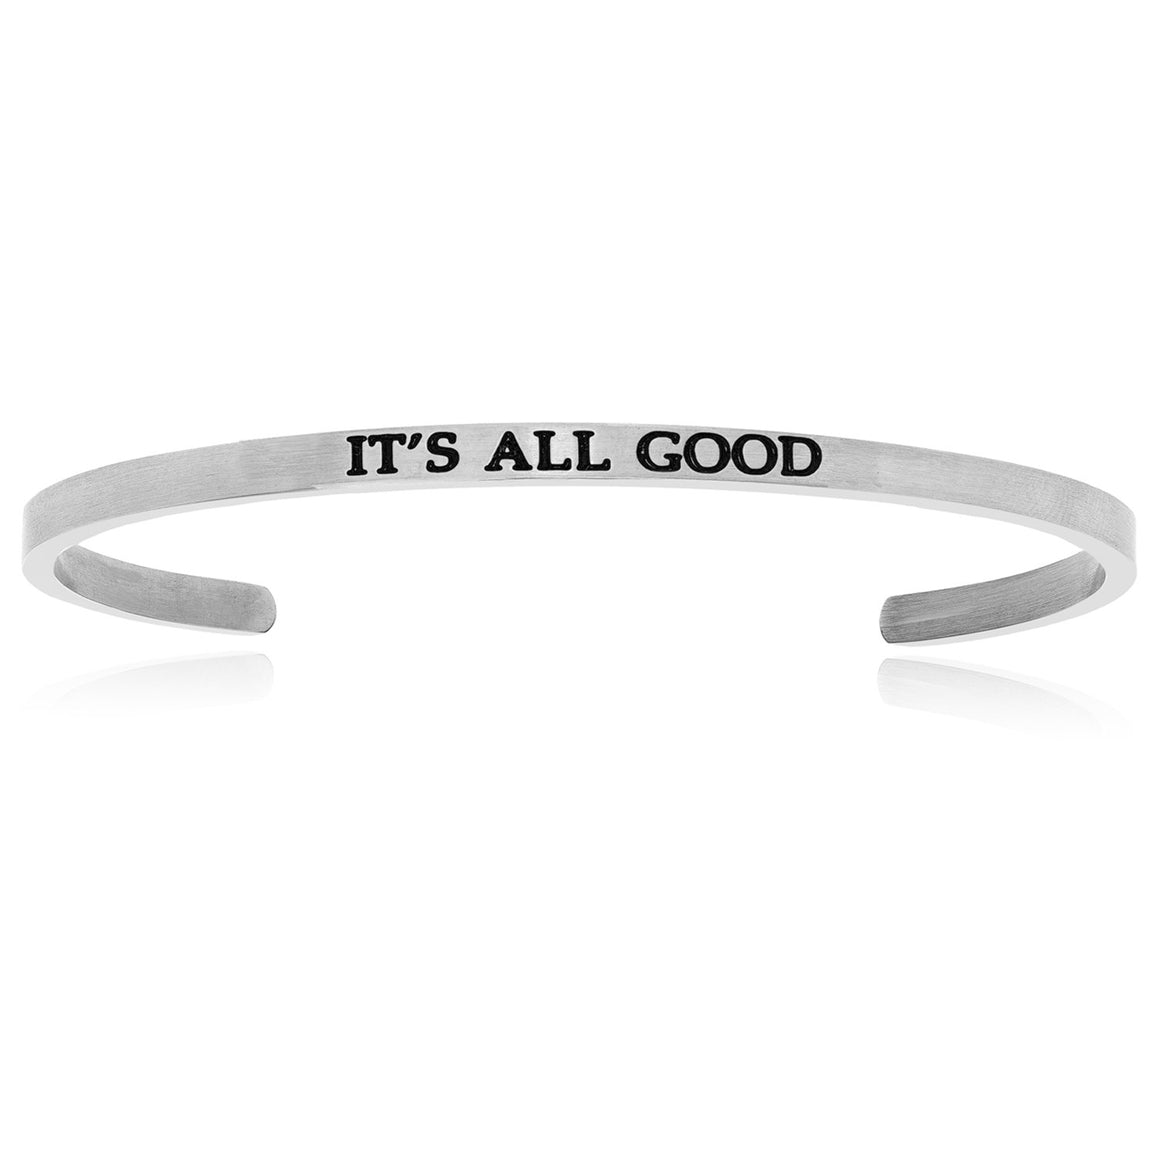 Stainless Steel It's All Good Cuff Bracelet